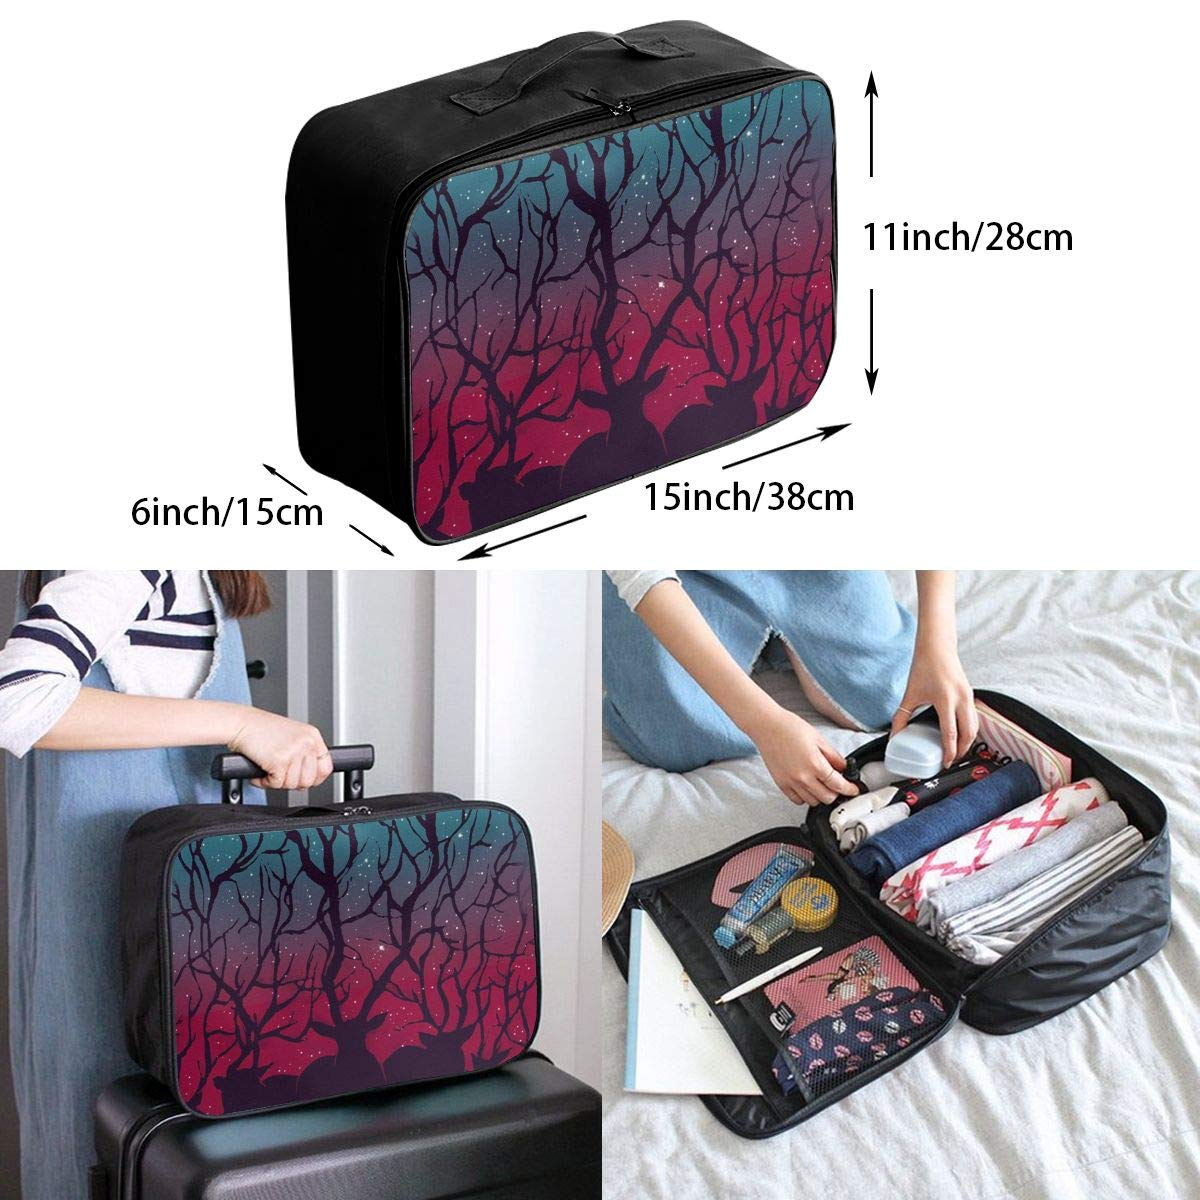 Stranger Deer In Forest Woodland Forest Tree Things Travel Duffel Bag Casual Large Capacity Portable Luggage Bag Suitcase Storage Bag Luggage Packing Tote Bag Weekend Trip